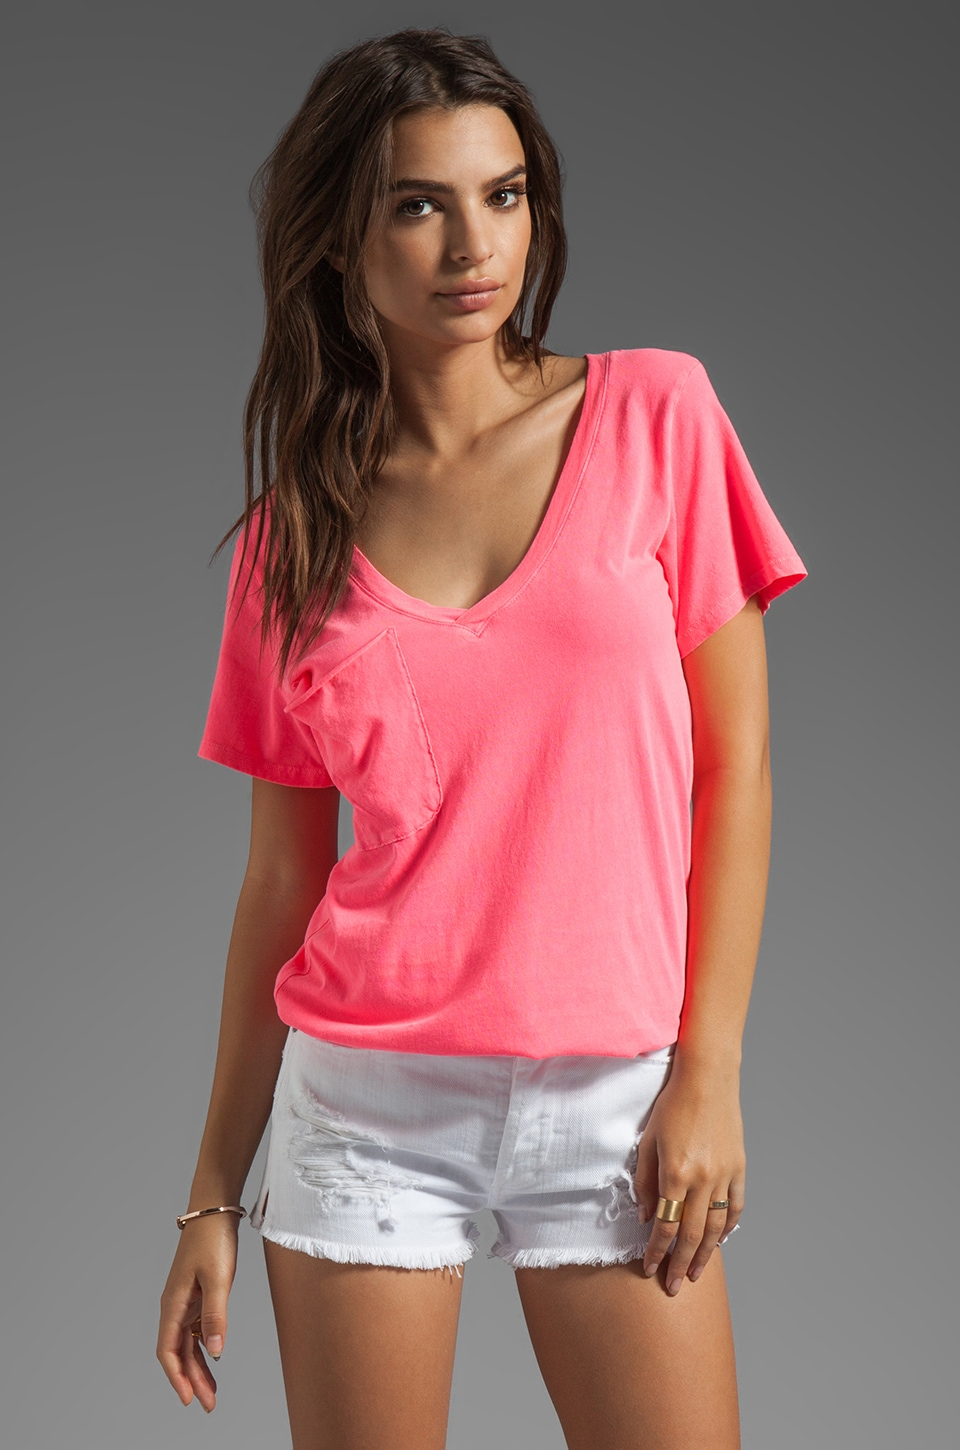 Bobi Light Weight Jersey V-Neck in Sweettart